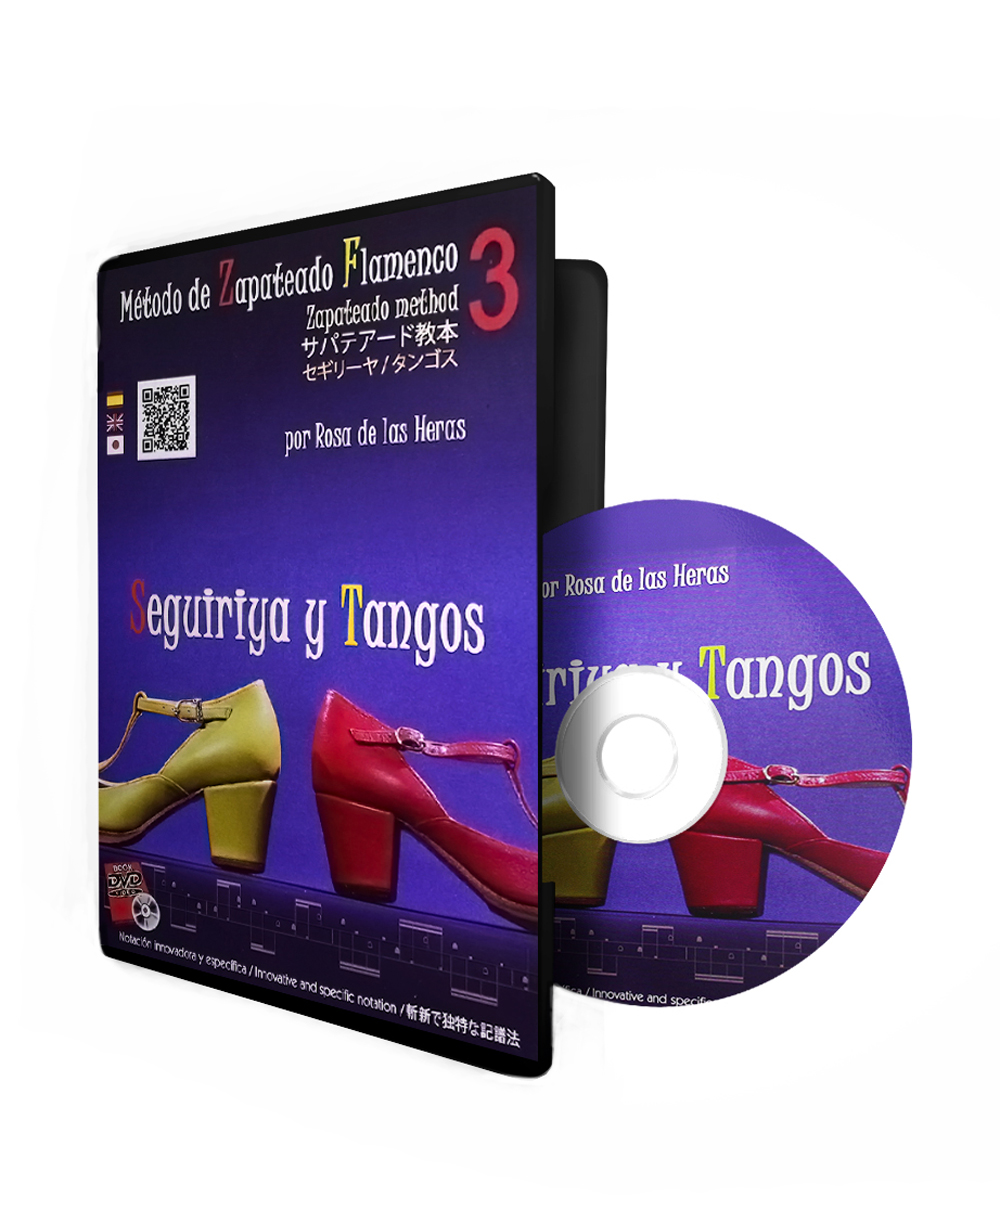 Flamenco dance DVD lessons from the conservatory of Madrid Seguiriya ...